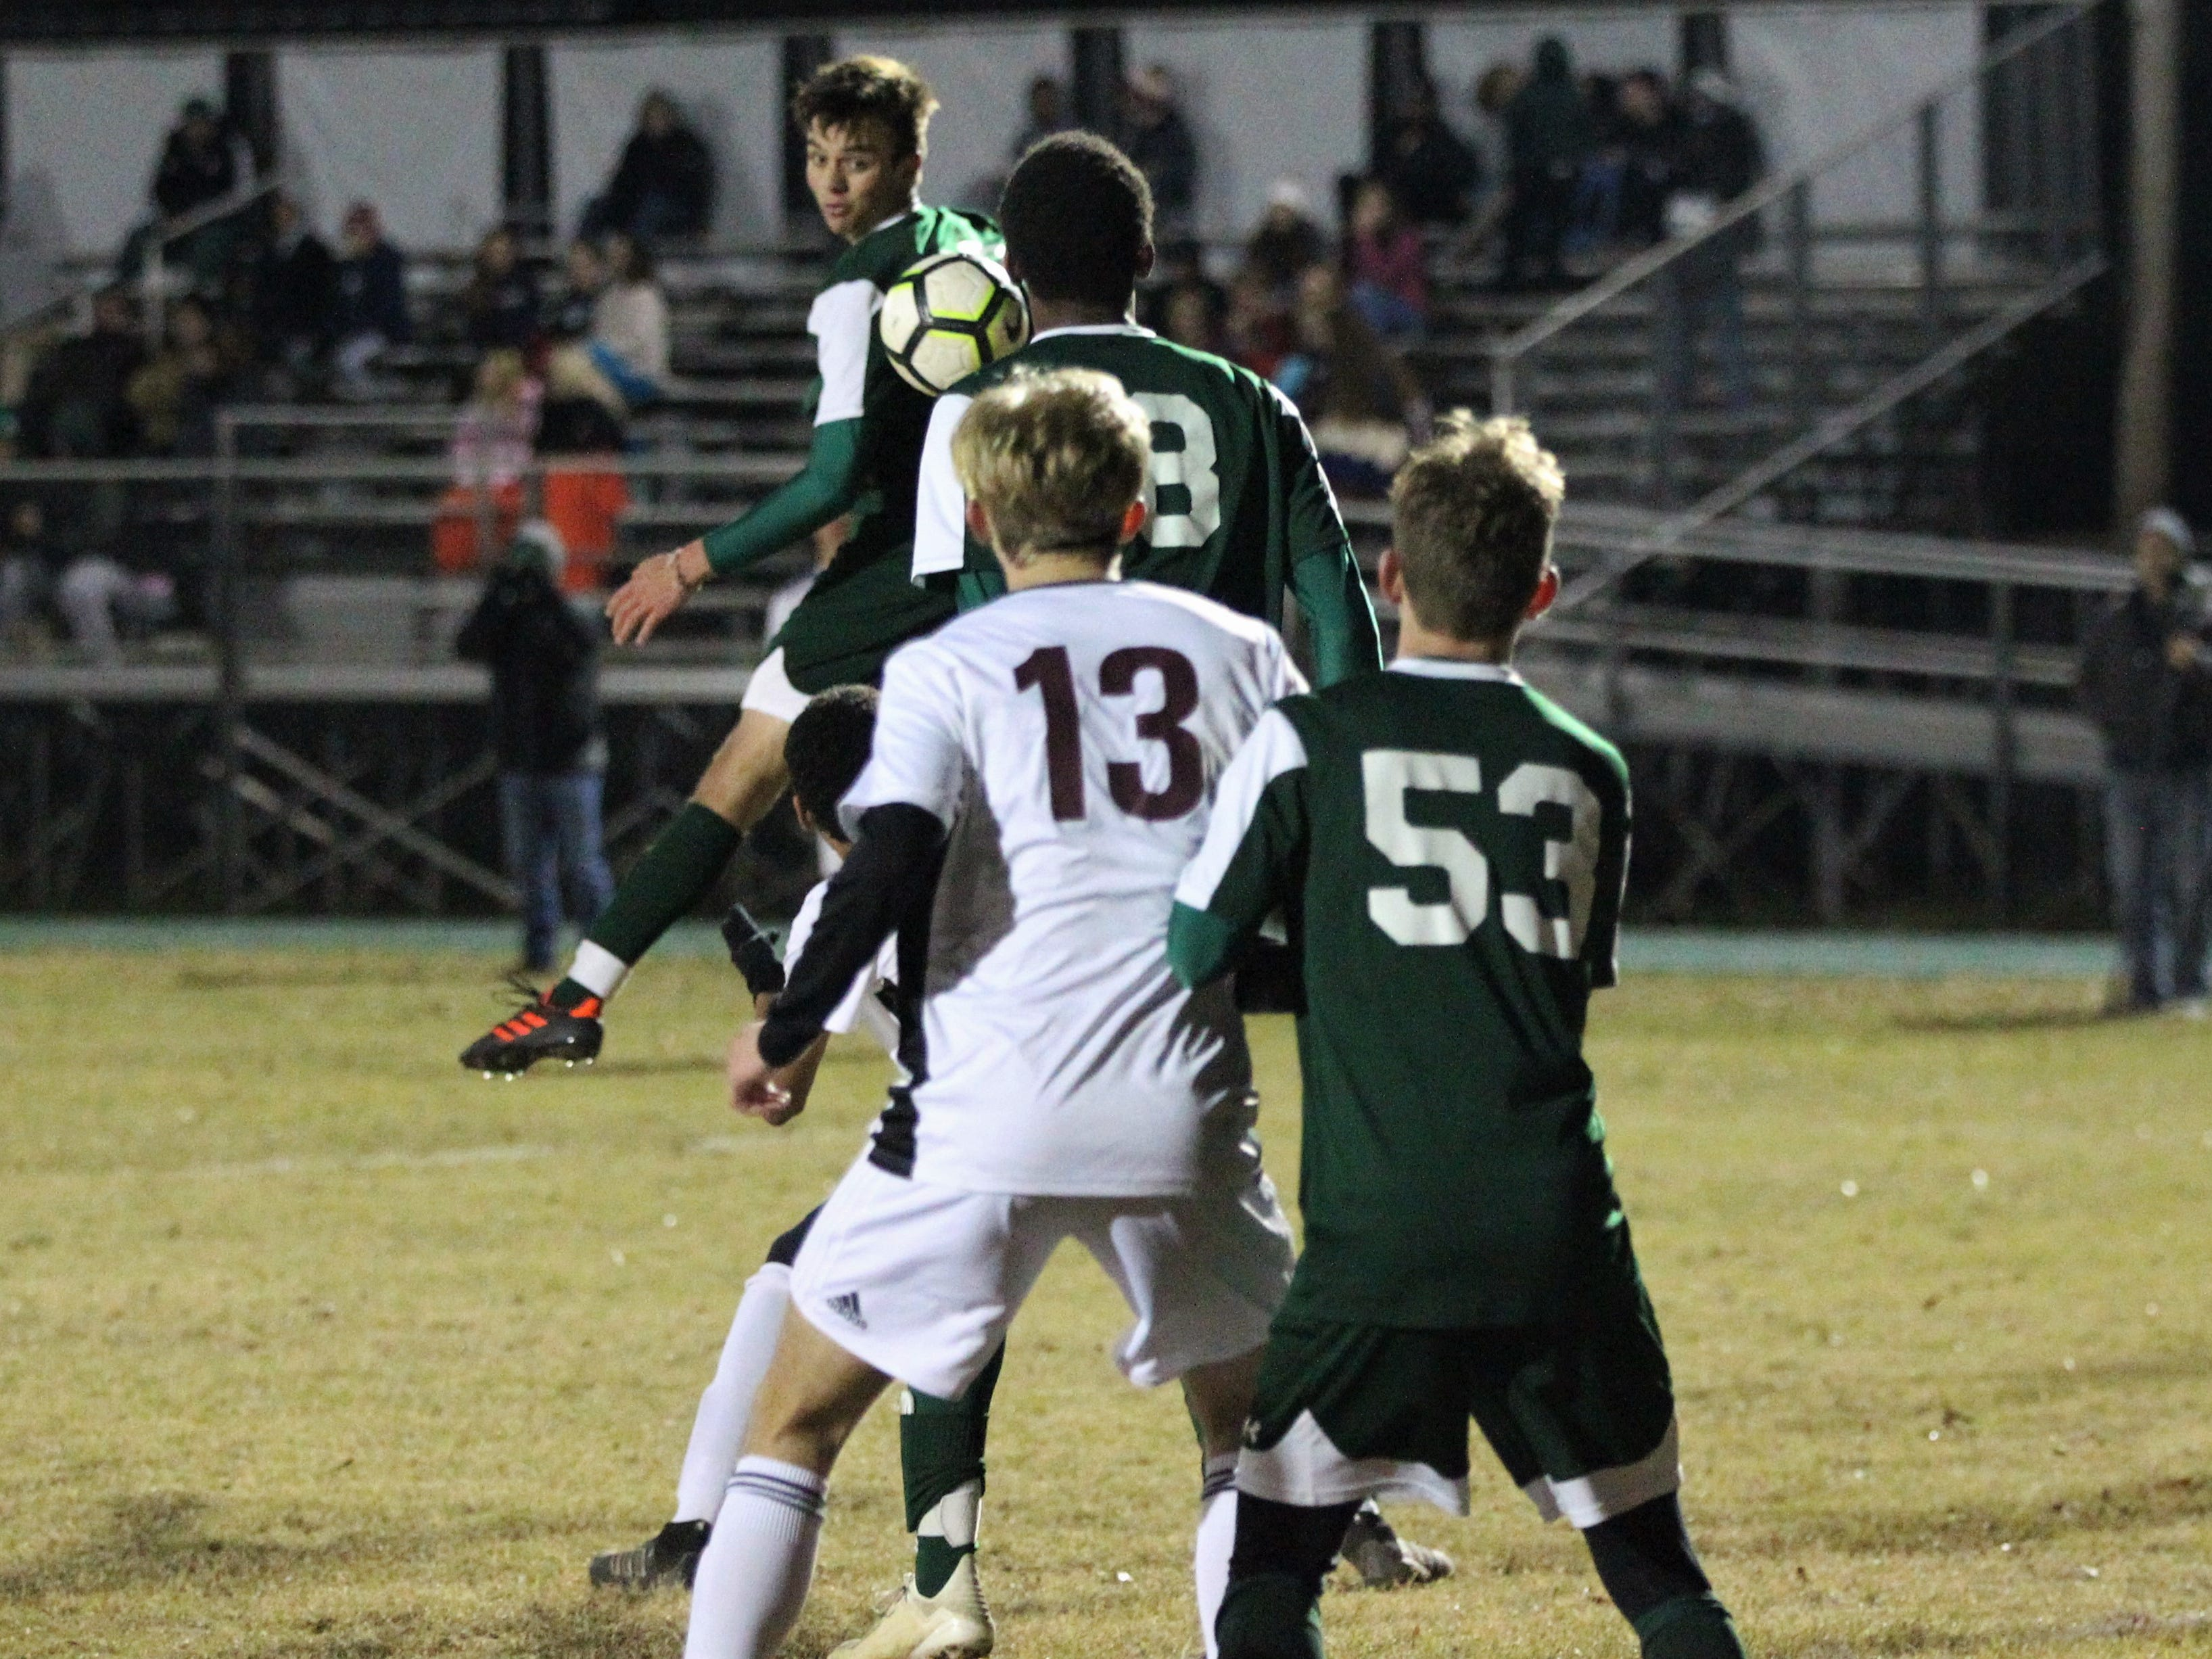 A throw-in from Chiles' Noah Allum heads into the box towards Lincoln's David Monroe, but Chiles' Will Johnson (ducking) poked a header goal as Chiles' boys soccer team beat Lincoln 1-0 in a District 2-4A semifinal on Jan. 30, 2019.